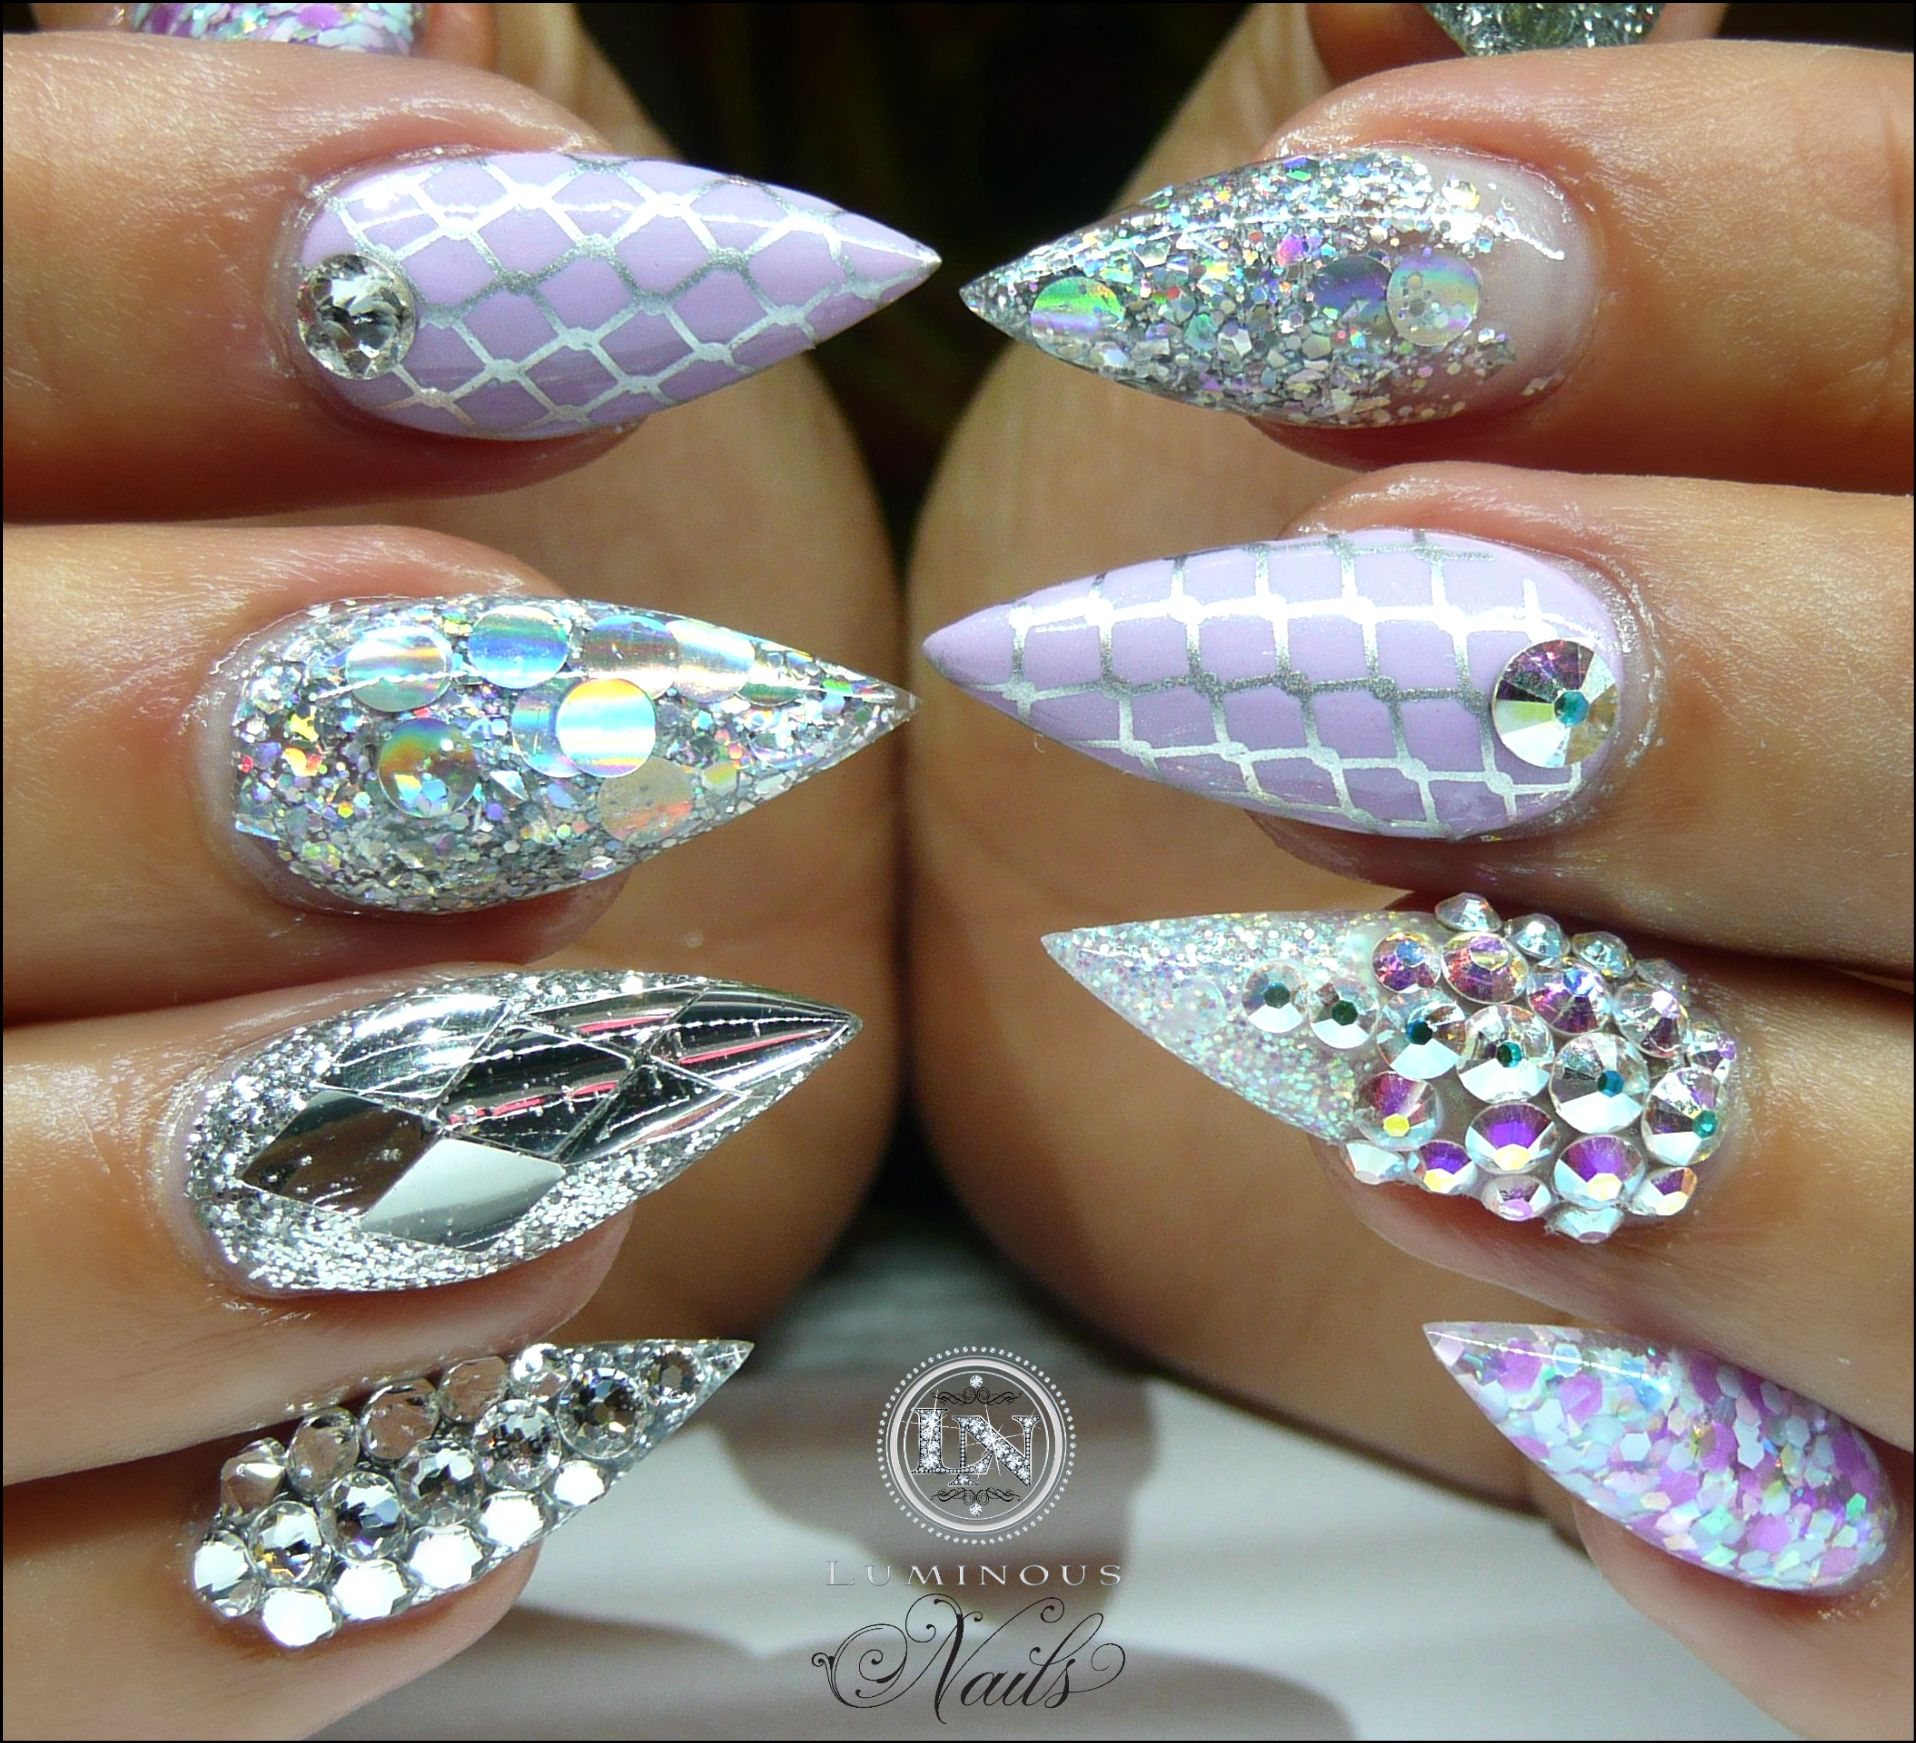 Pin by Charity Austin on Nails | Pinterest | TVs, Acrylic gel and ...